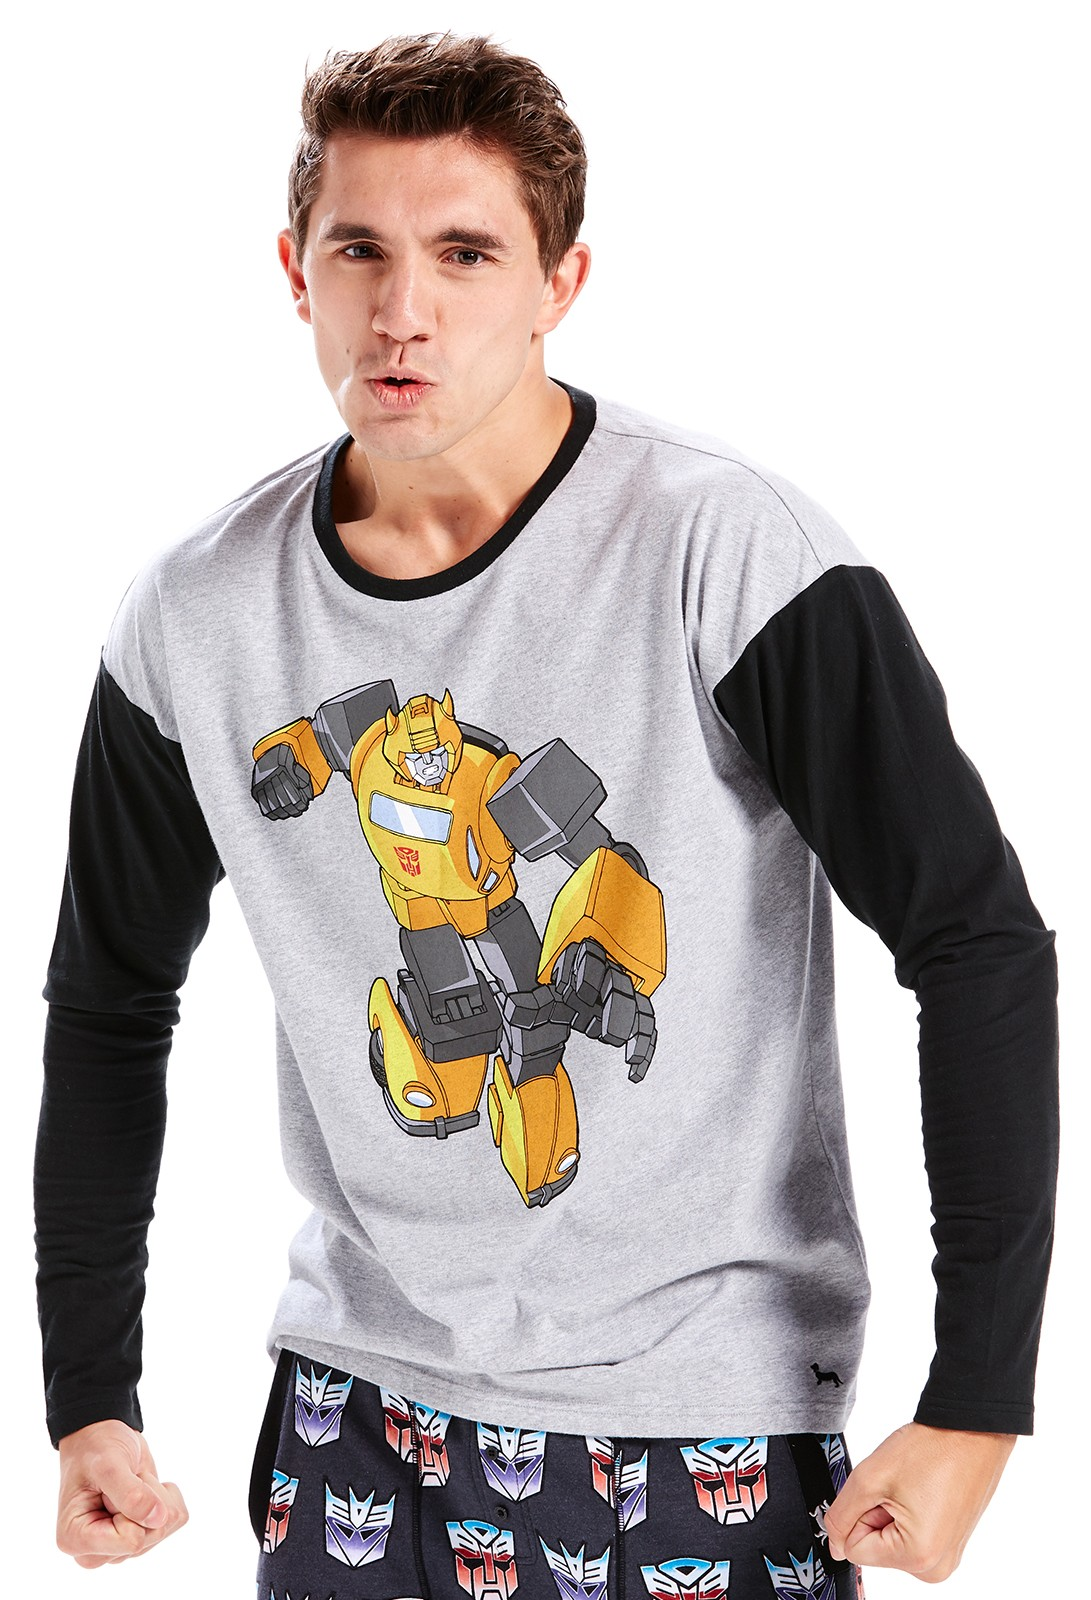 Transformers News: Peter Alexander Transformers Themed Nightwear, Homewear, Boxers